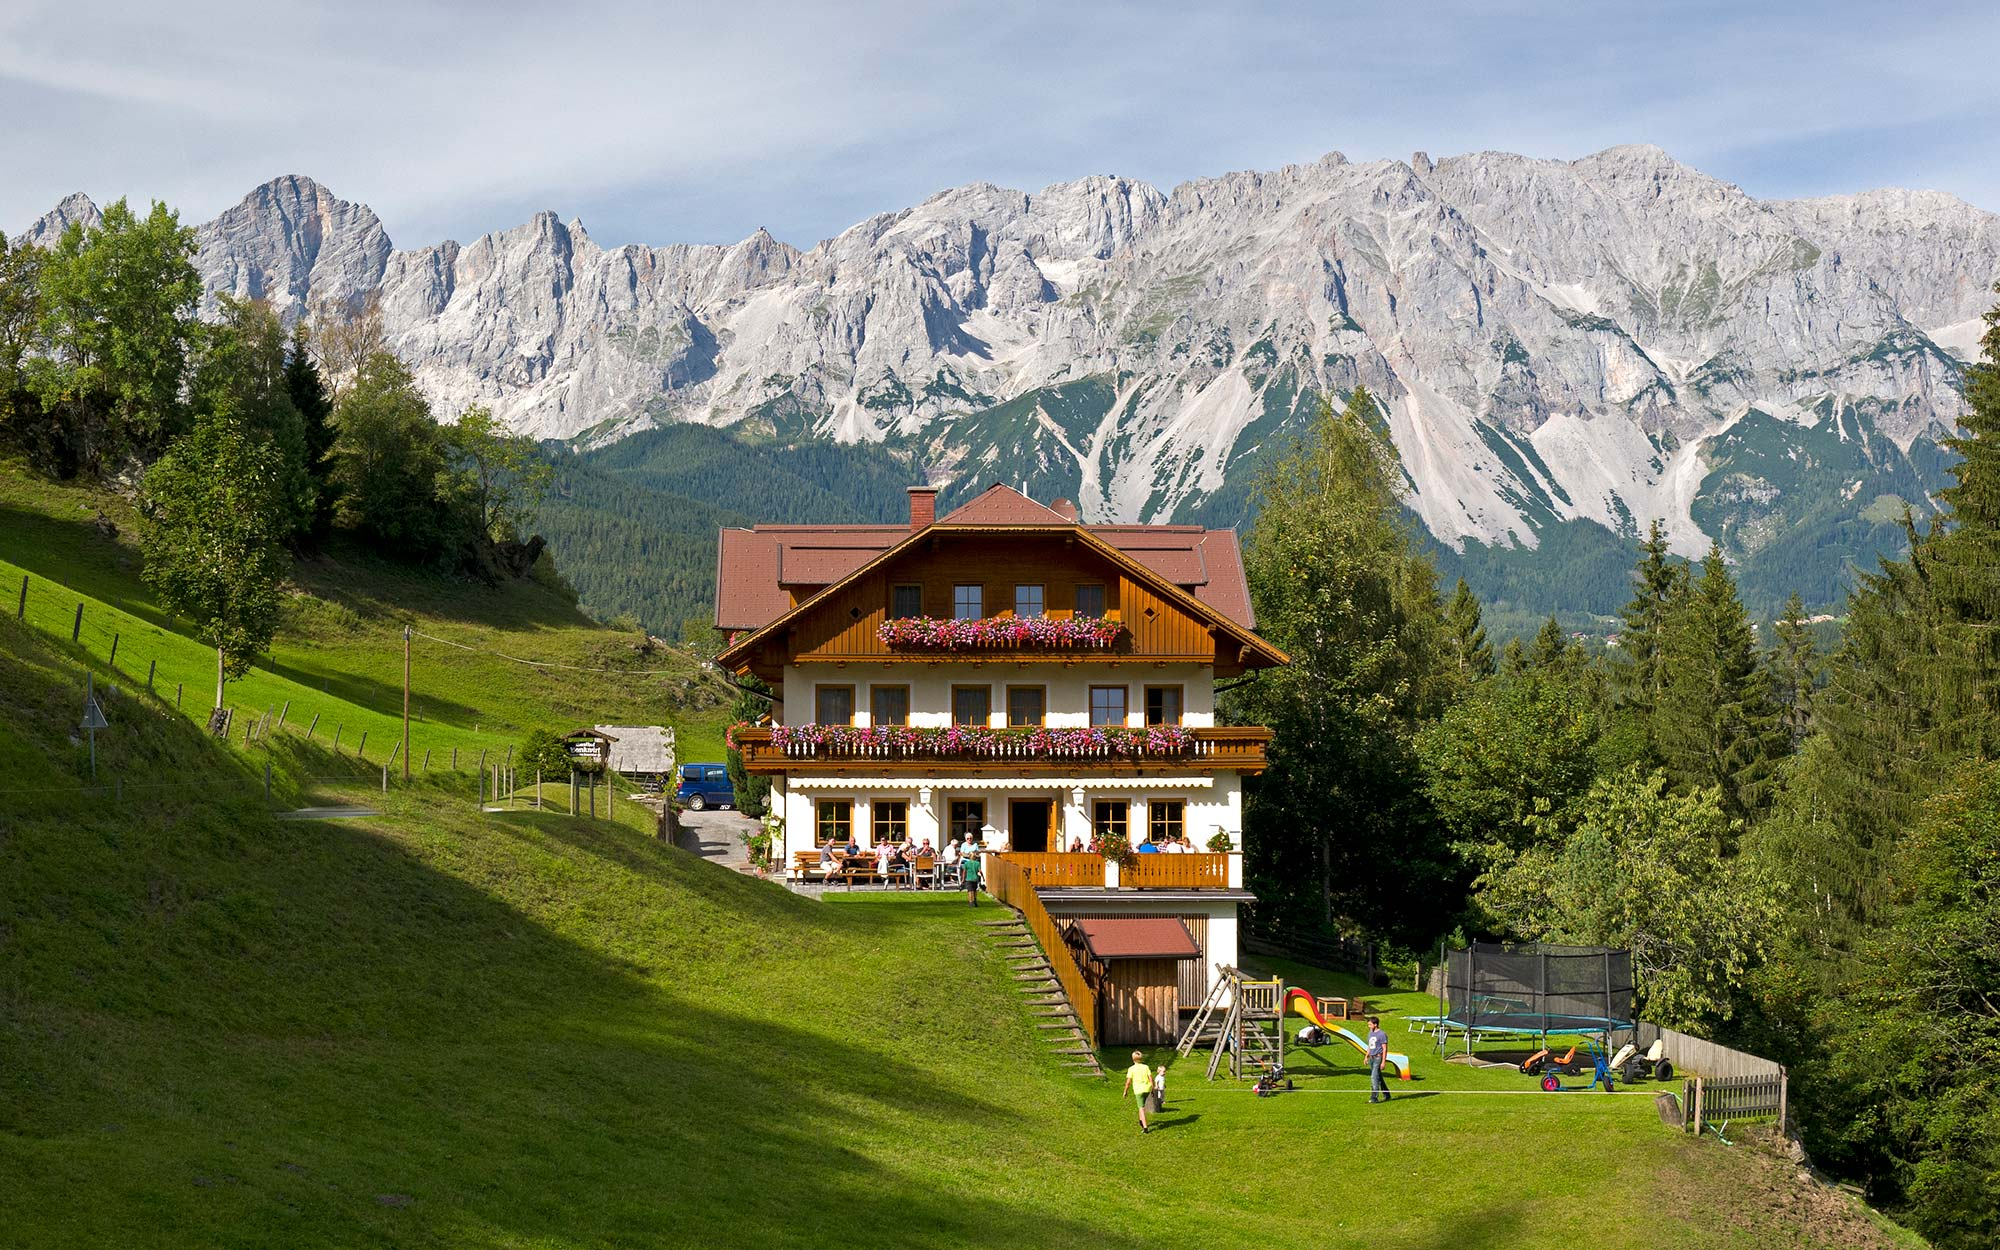 Gasthaus Bankwirt in Preunegg, with traditional cuisine and a breathtaking view